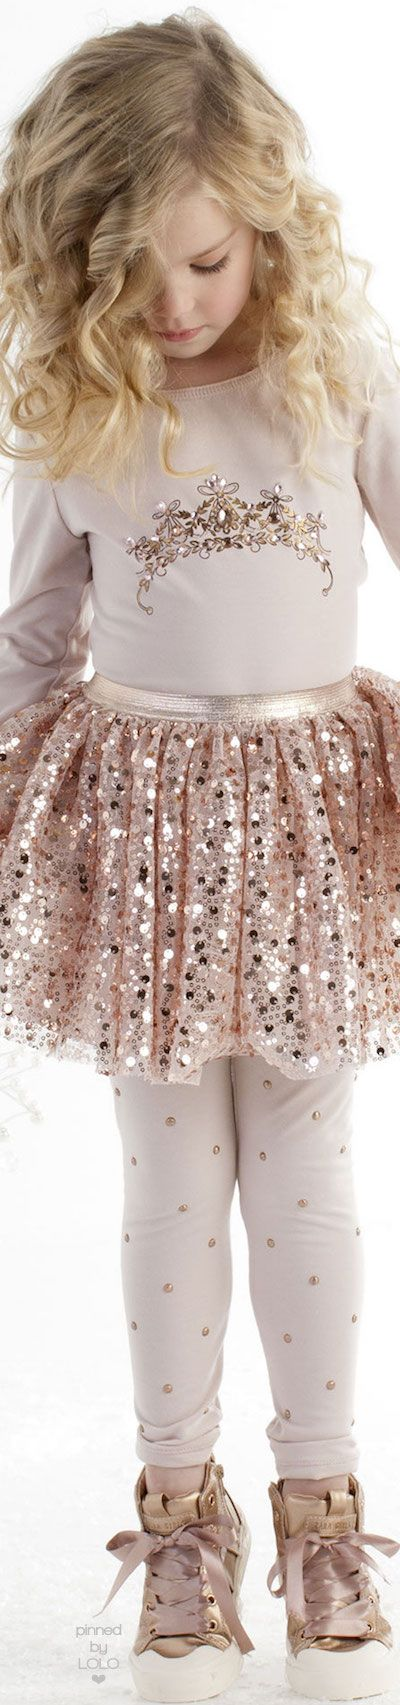 Sequin Skirt | LOLO❤︎